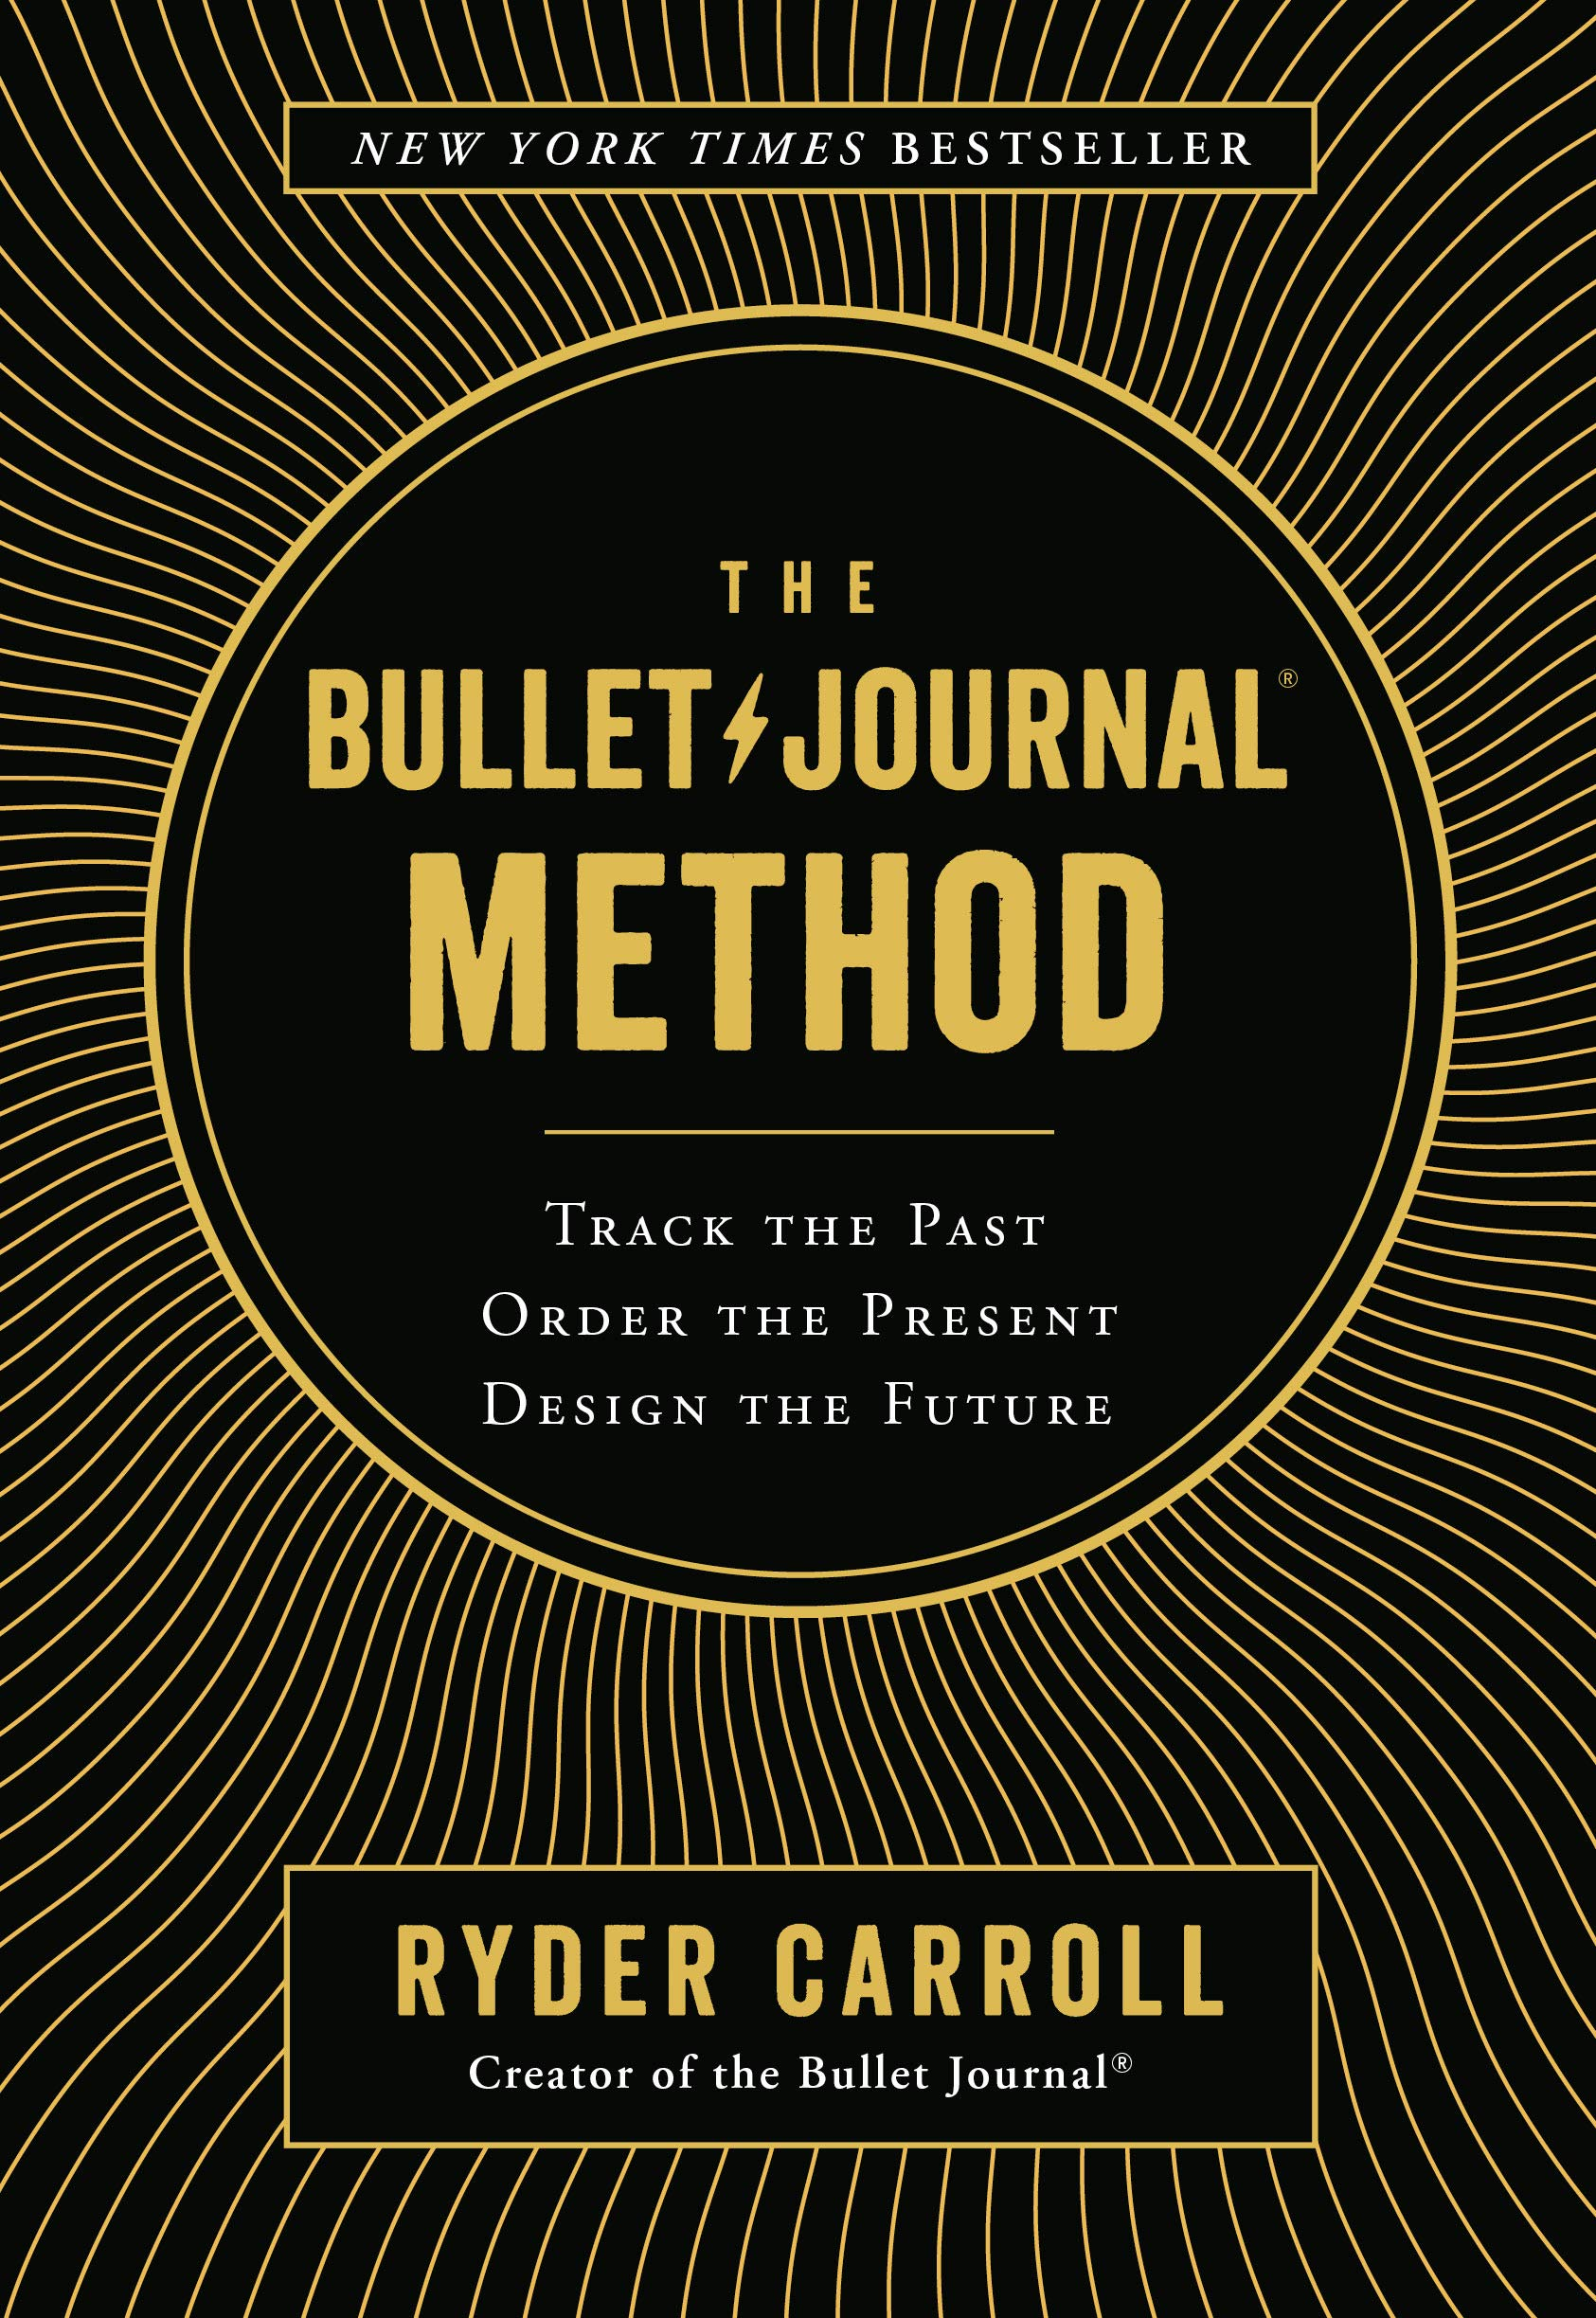 the-bullet-journal-method-by-ryder-carroll